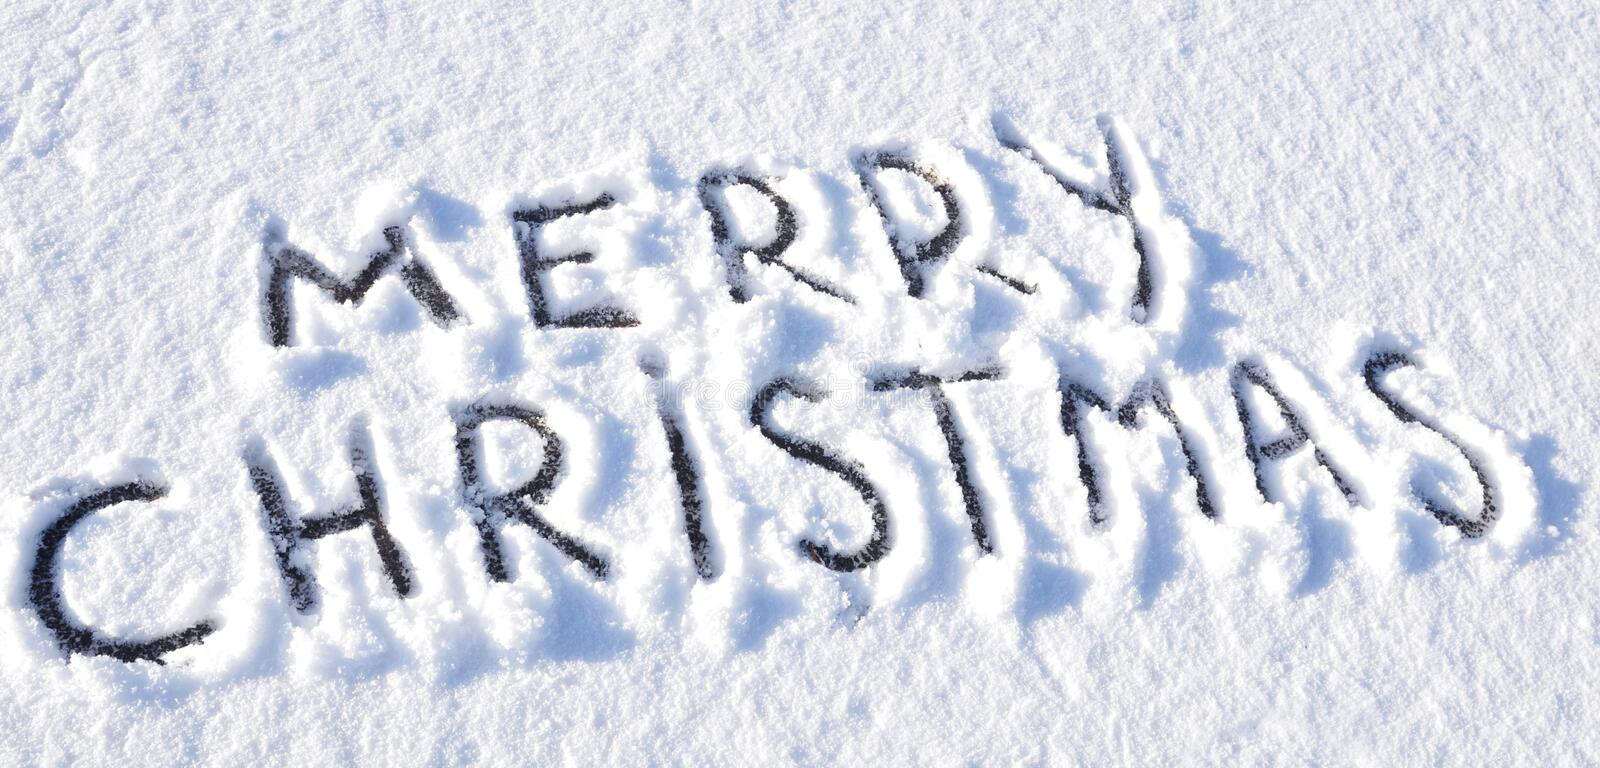 Download Merry Christmas stock image. Image of winter, writing - 17193379